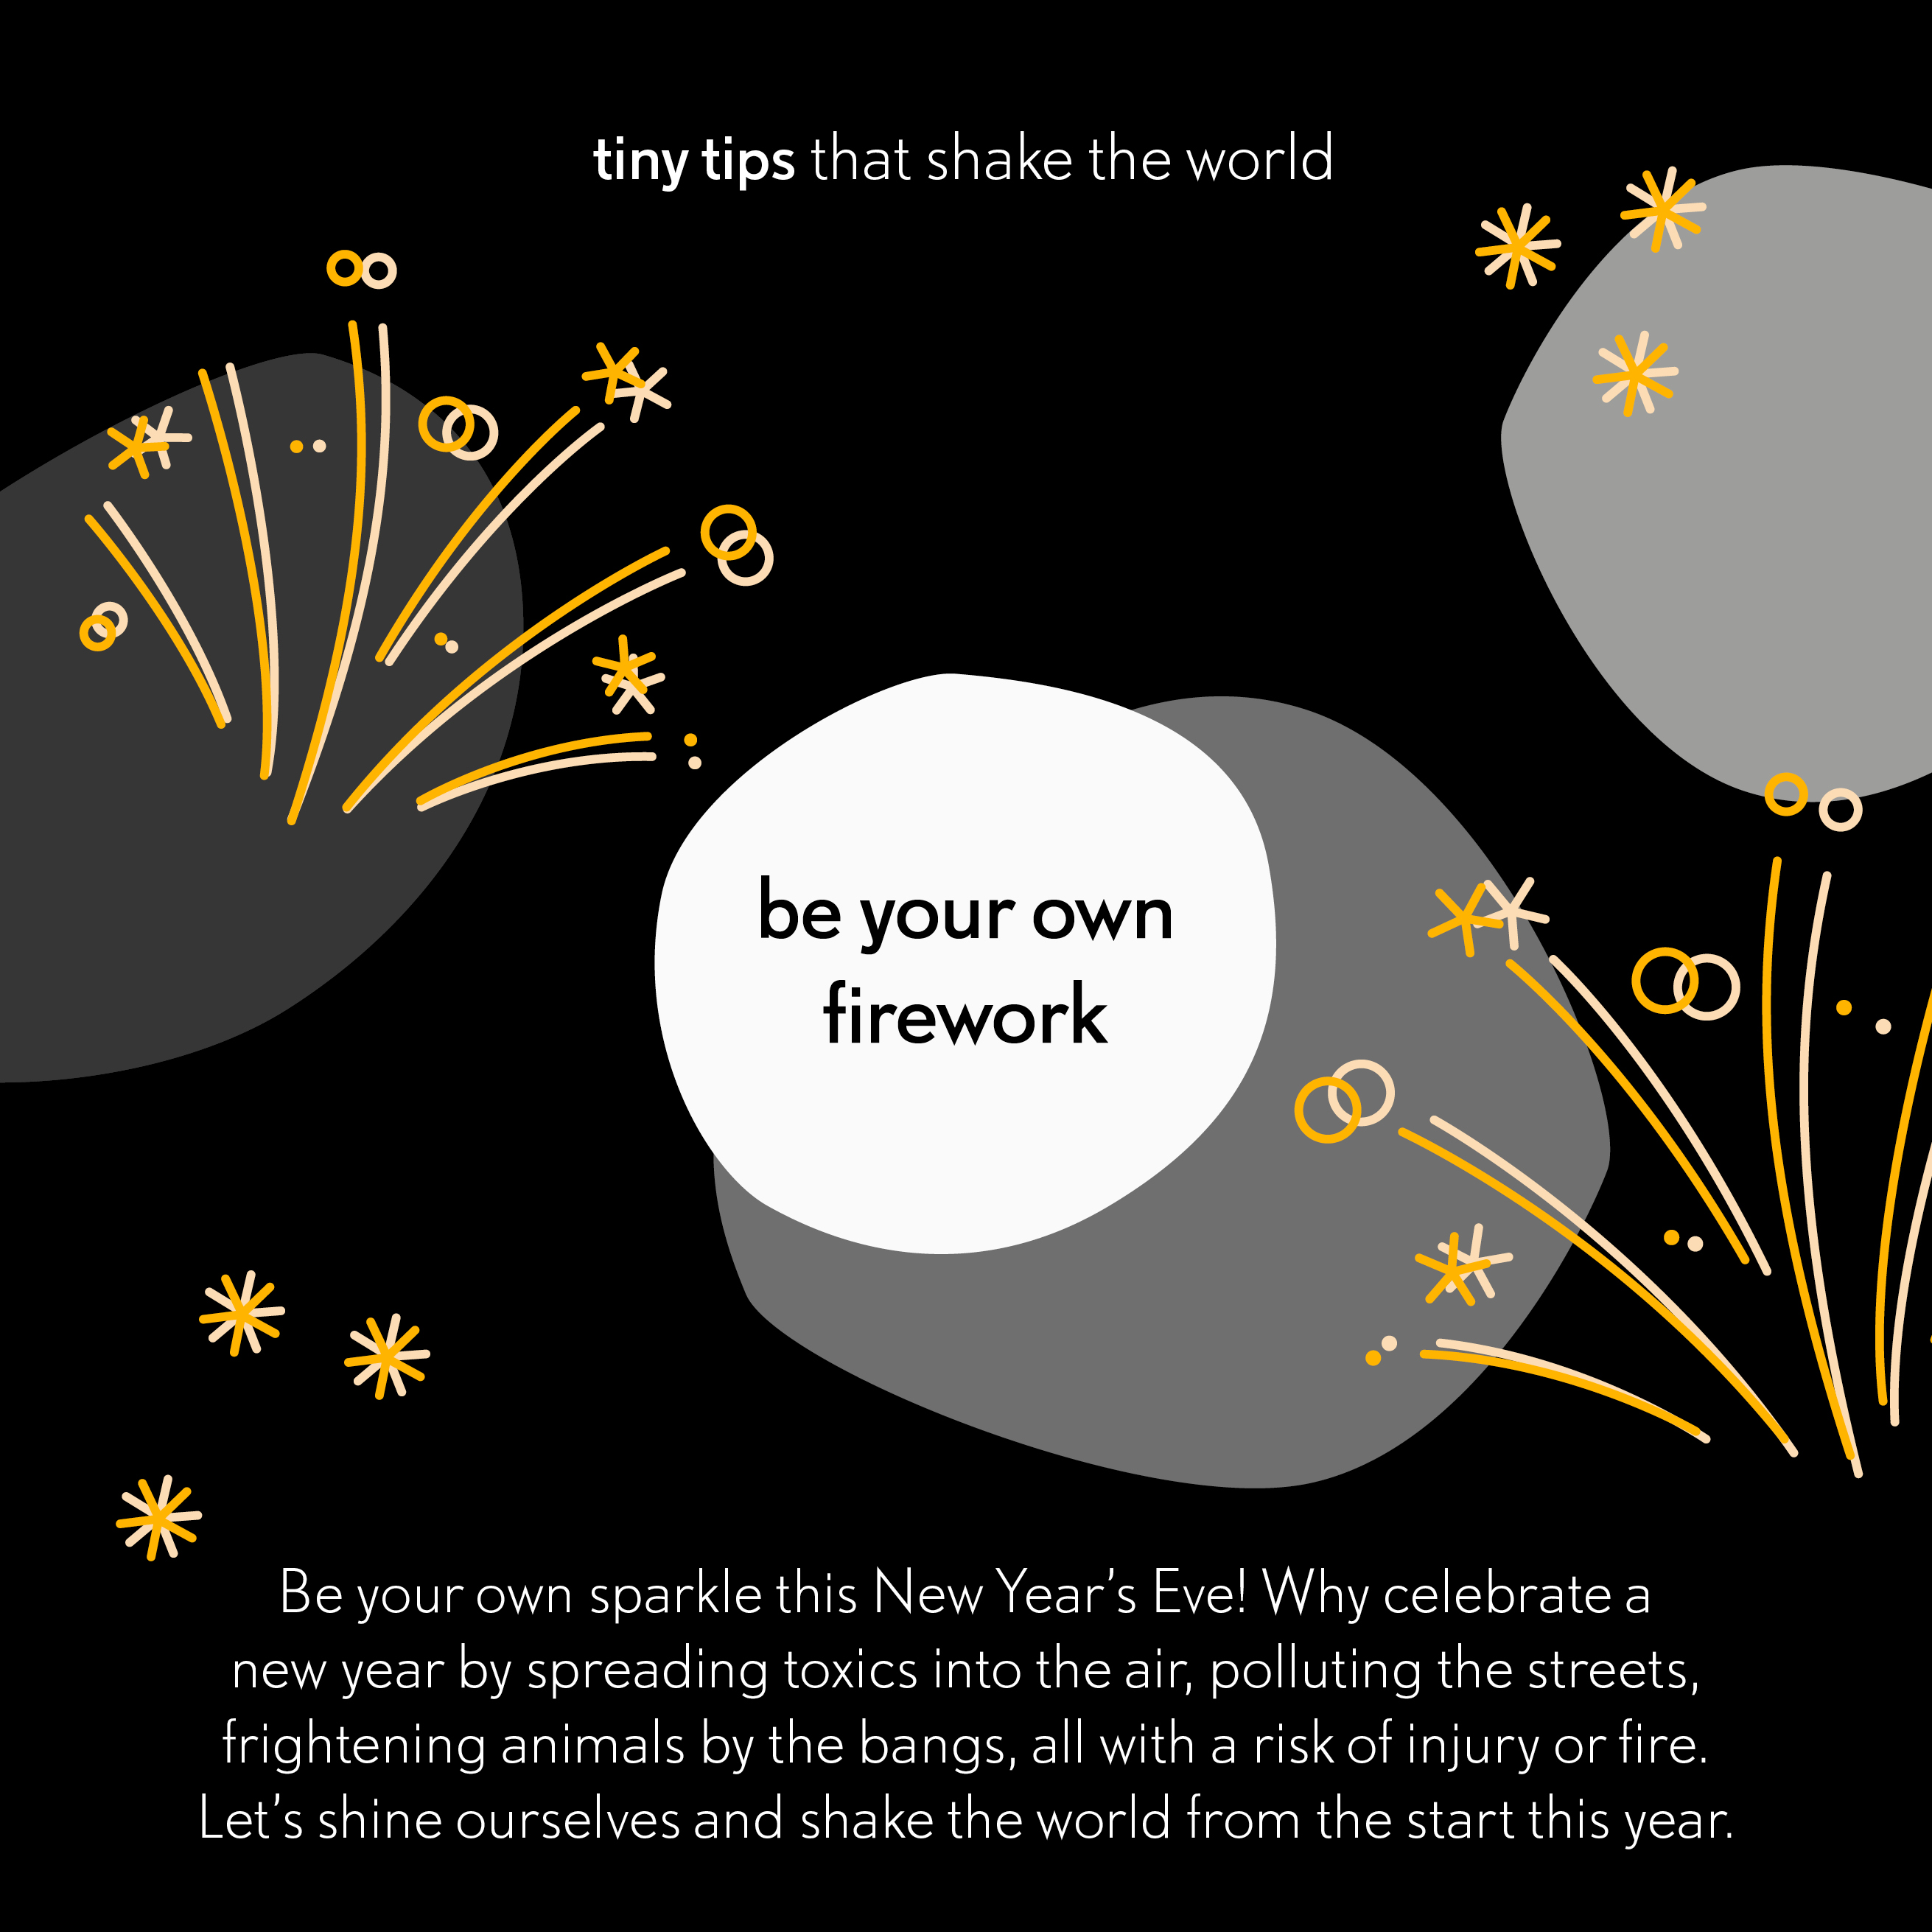 20191231 be your own firework - tiny tips that shake the world